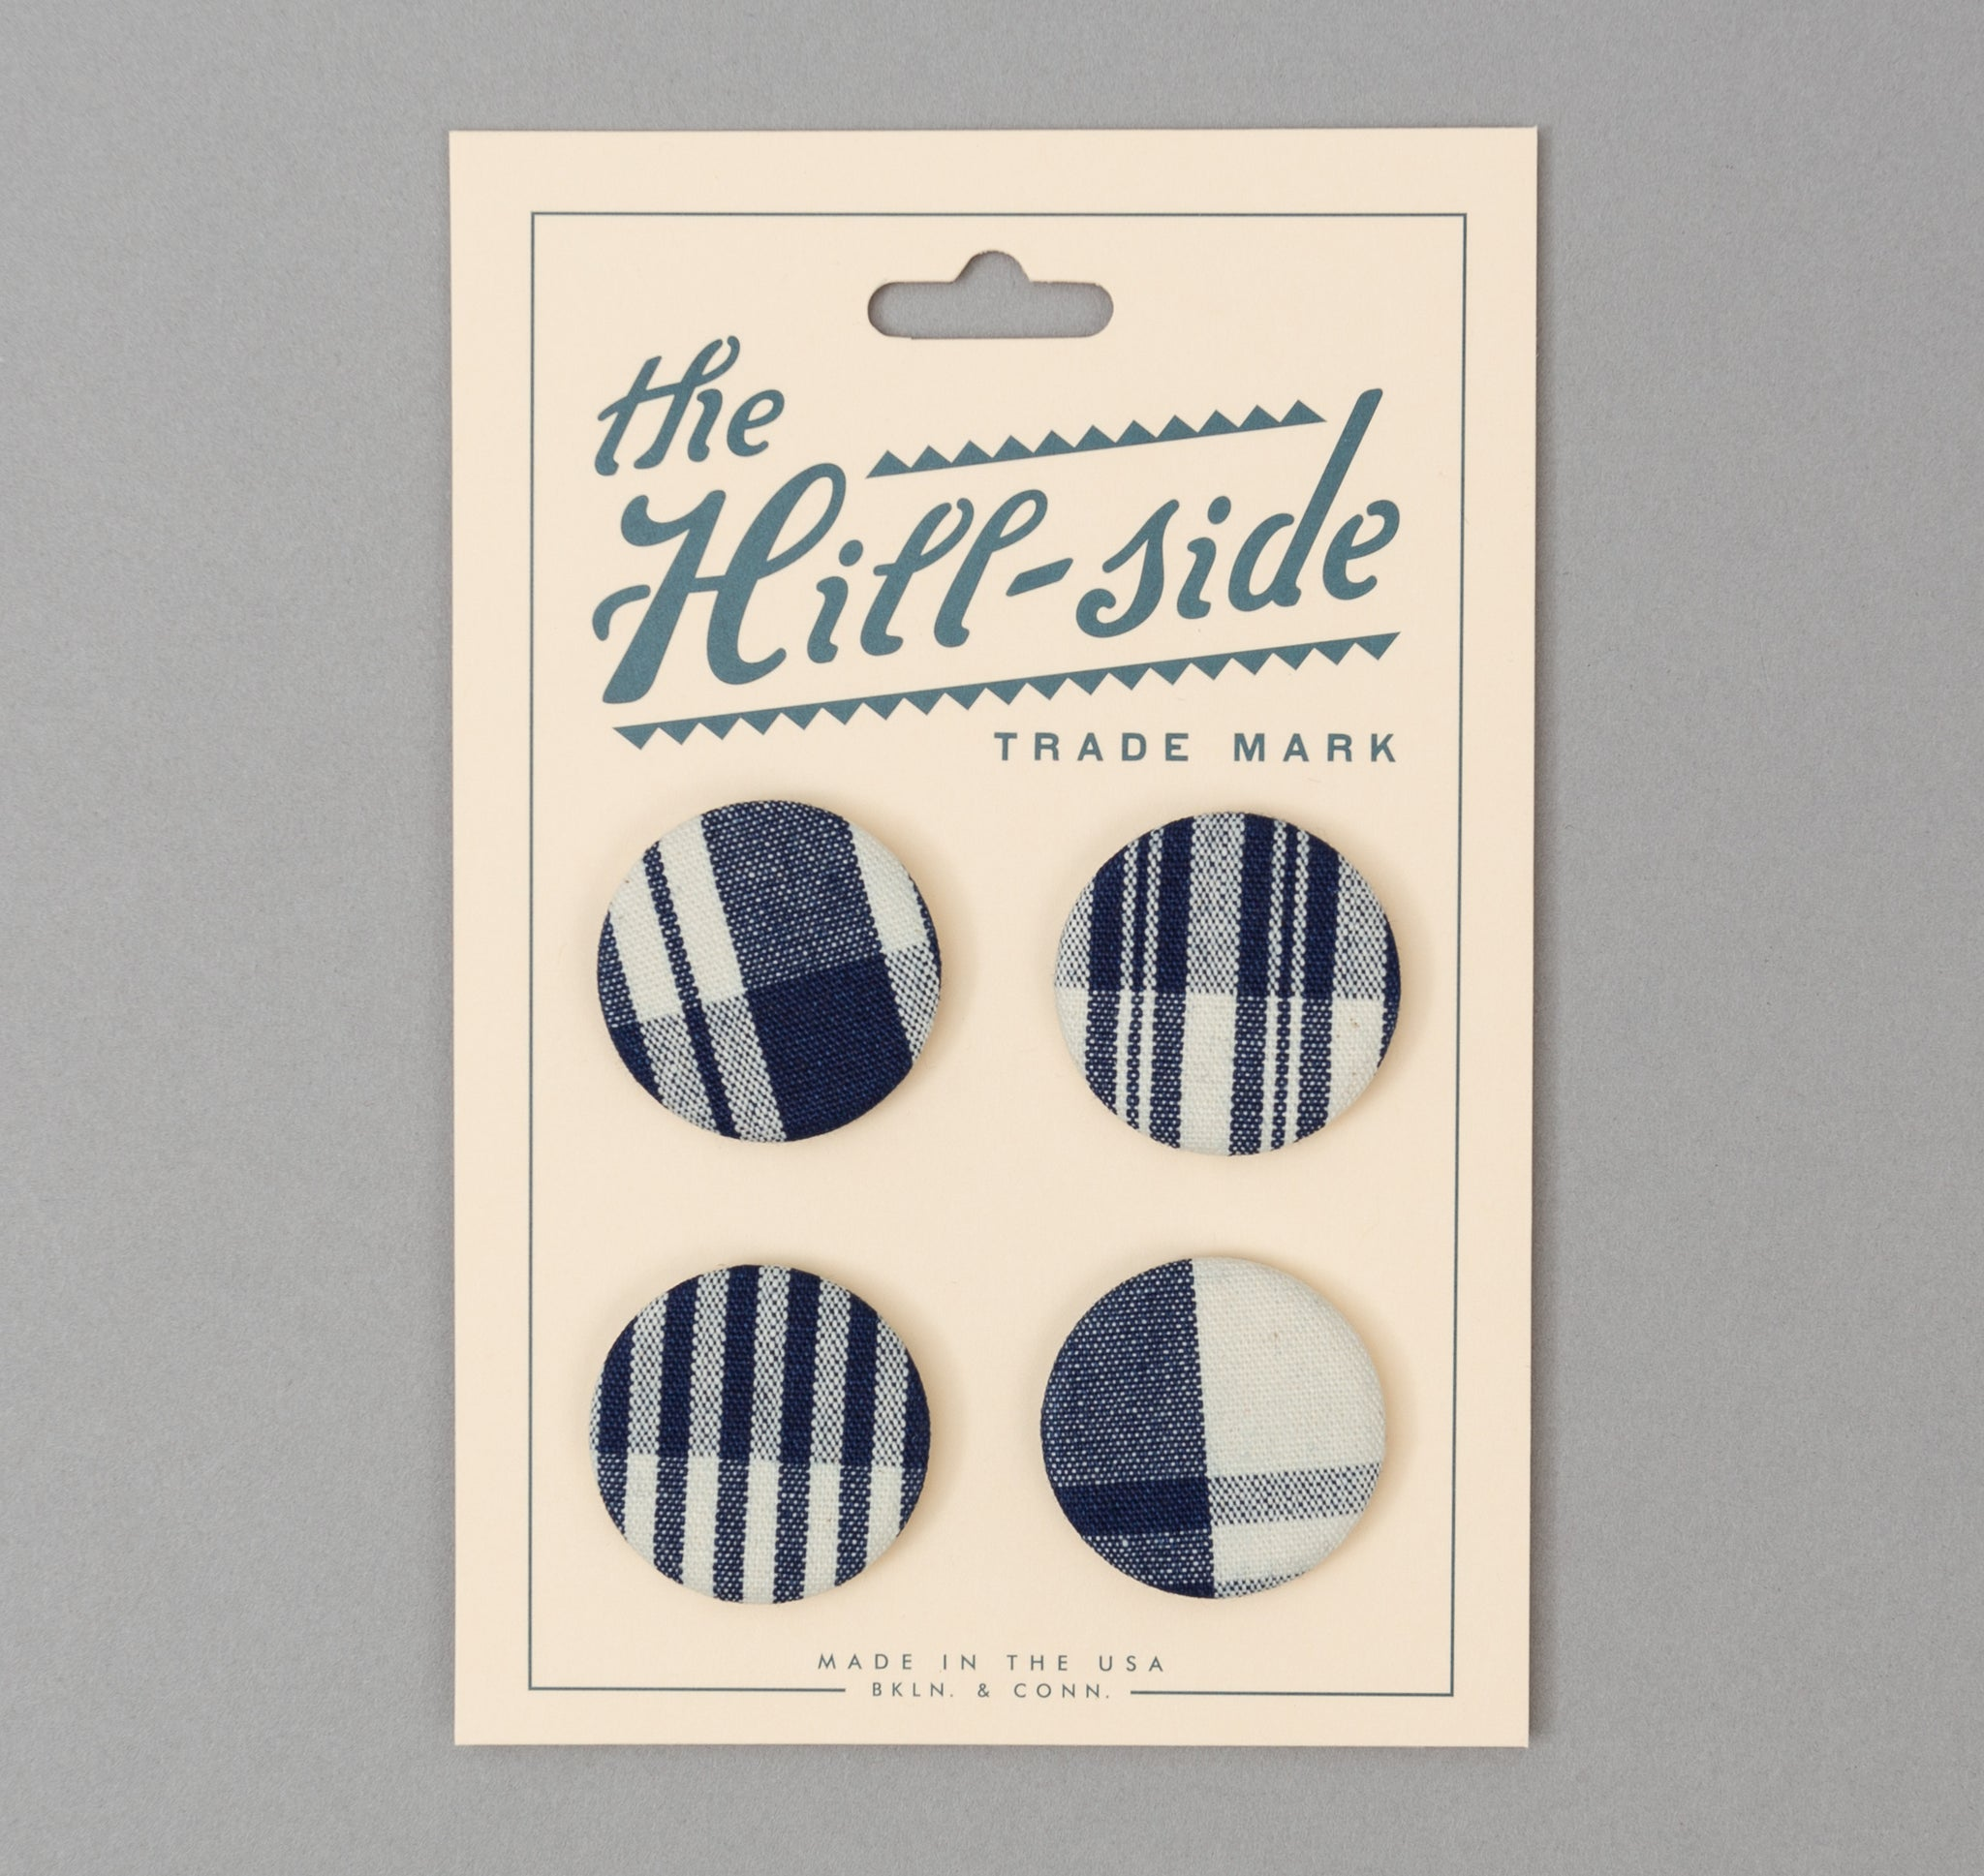 The Hill-Side - Non-Repeating Check Oxford Pin-Back Buttons, Indigo / White  - PB1-321 - image 1